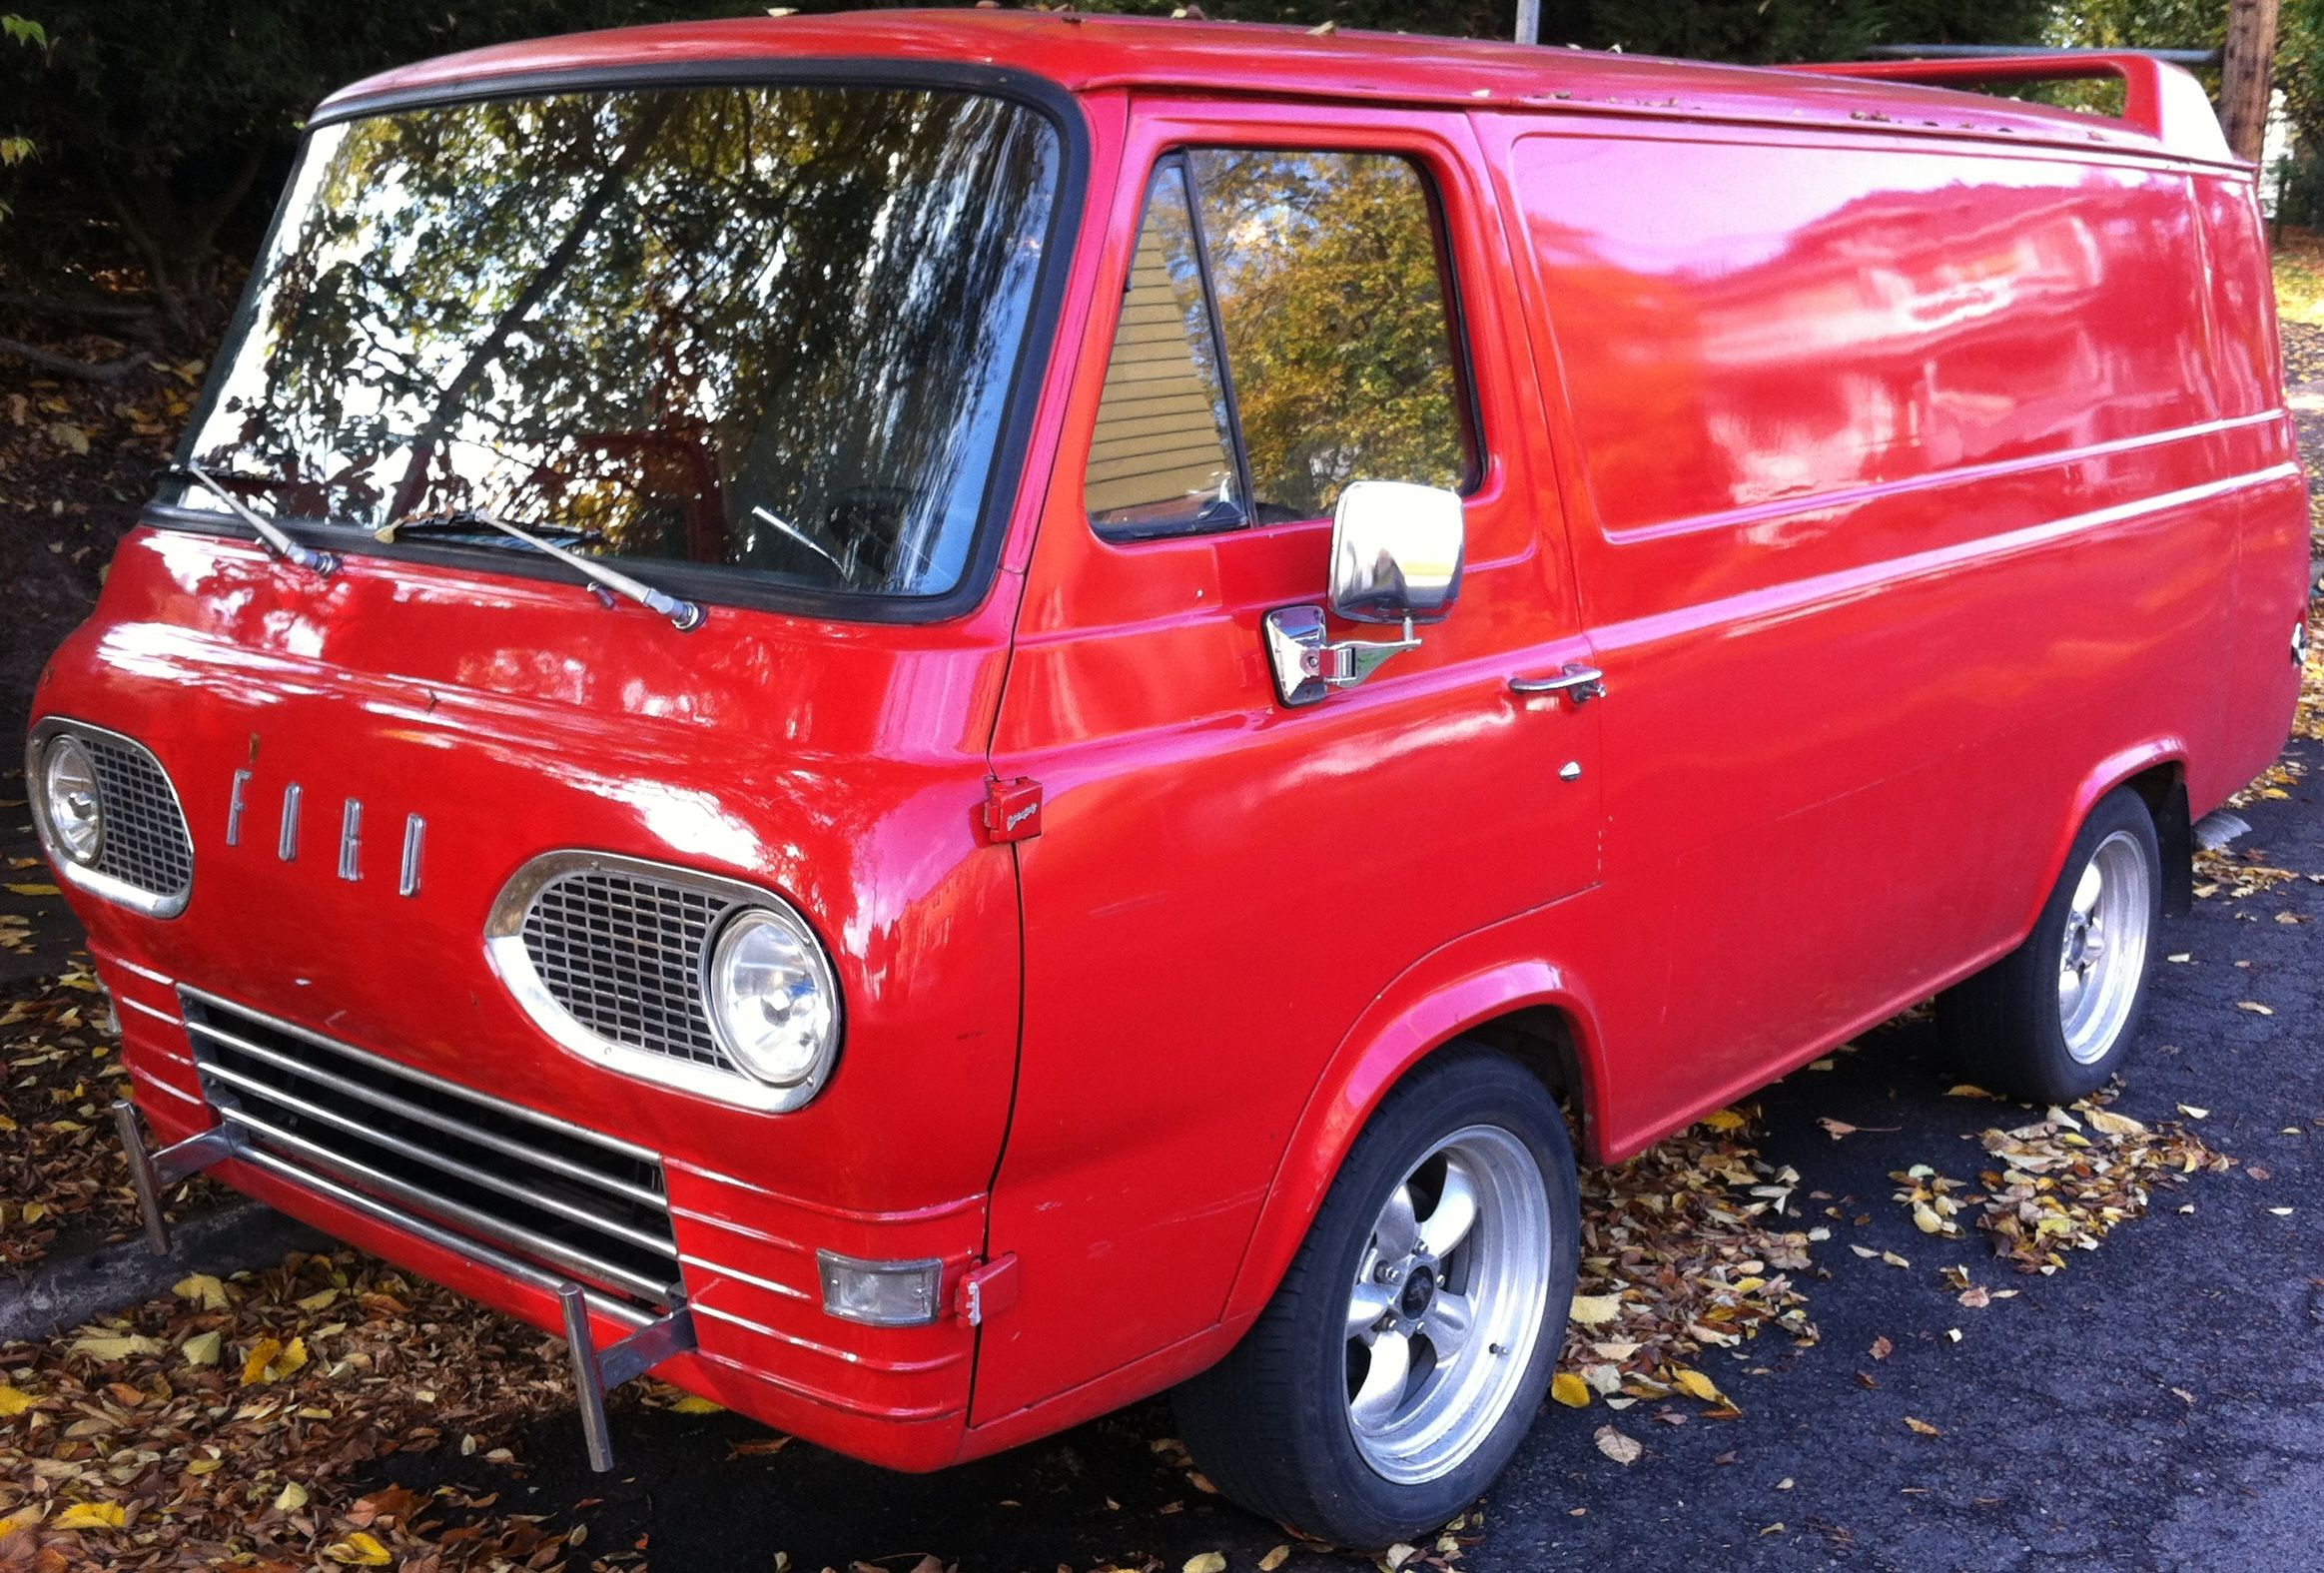 1st gen ford econoline check out the a team like spoiler on the roof